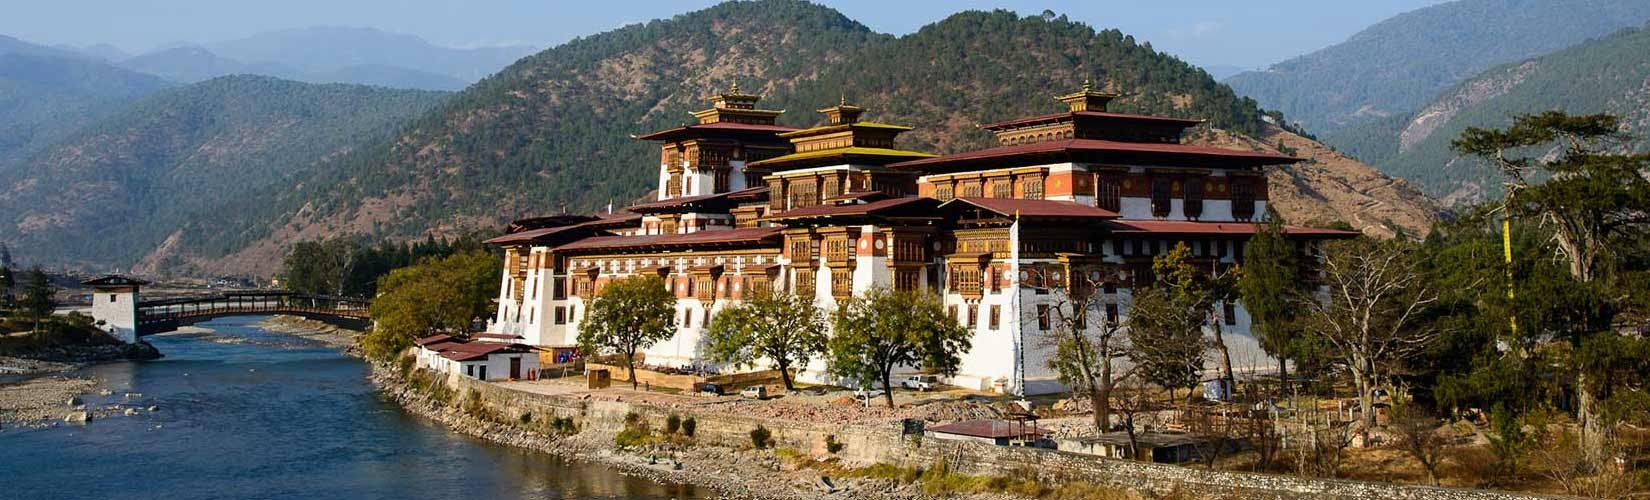 Top 10 Best Places to Visit in Bhutan